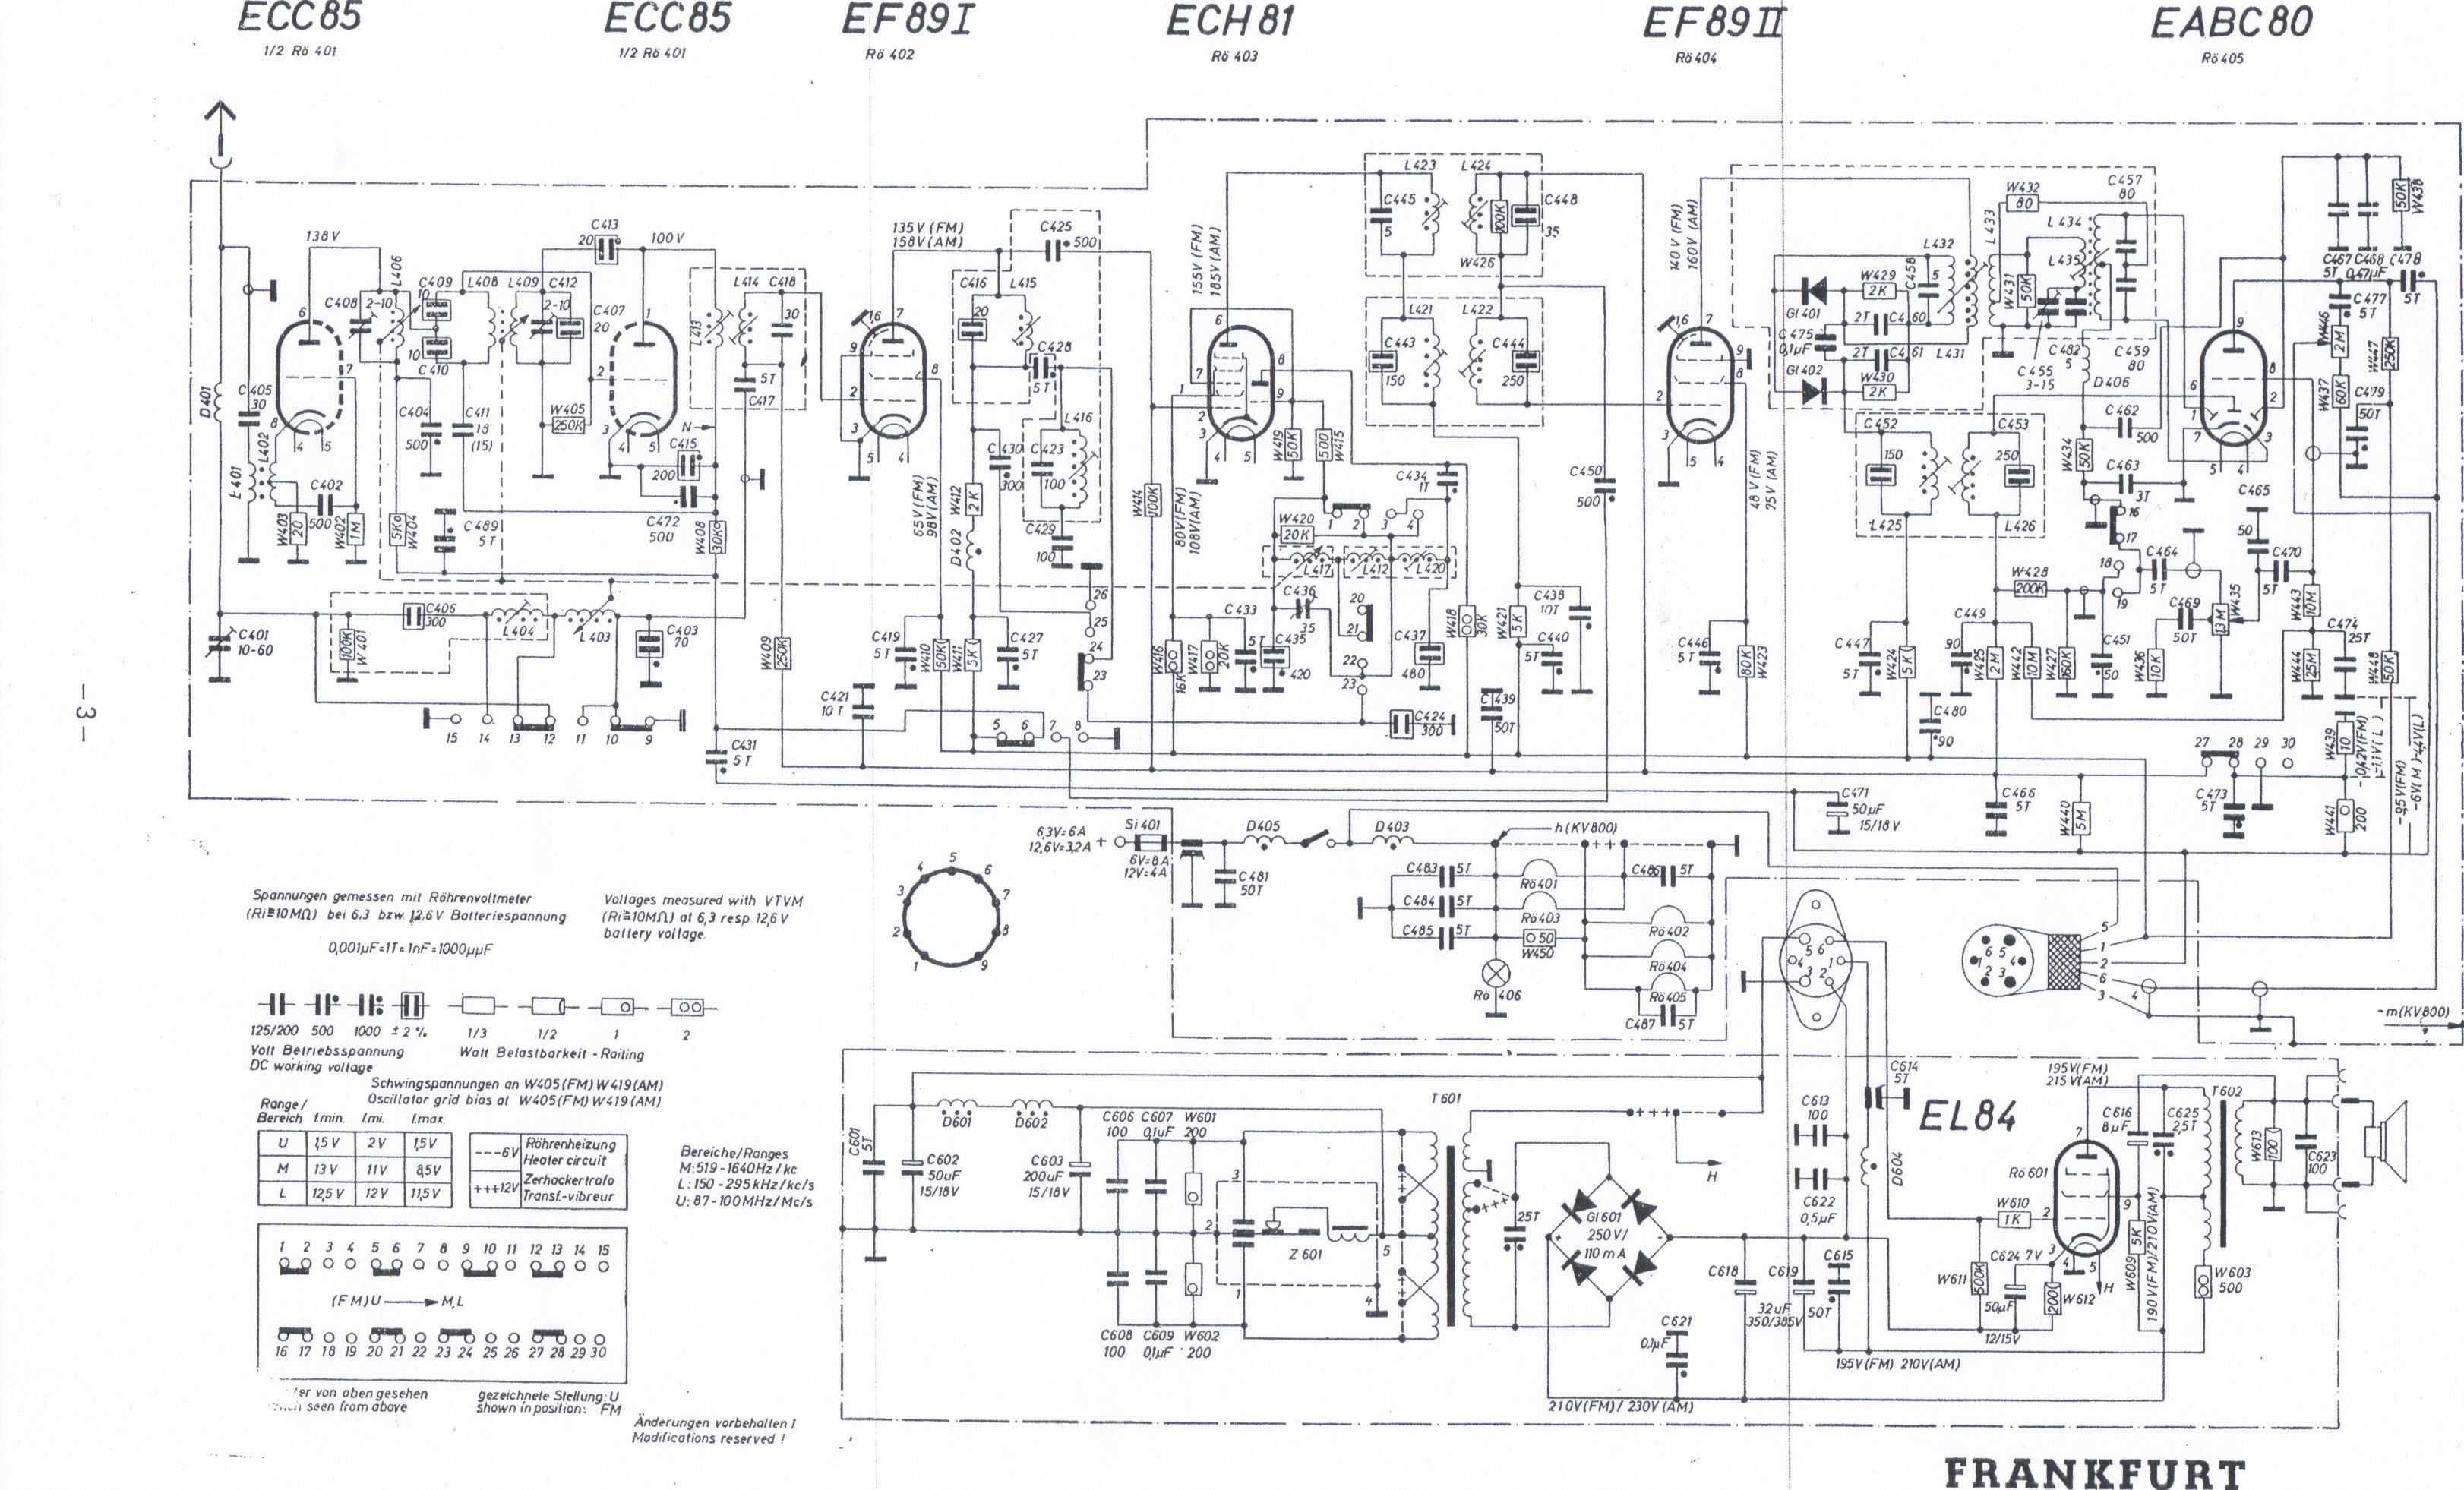 blaupunkt 2020 wiring diagram carrier oil pressure switch thesamba 1959 59 frankfurt radio